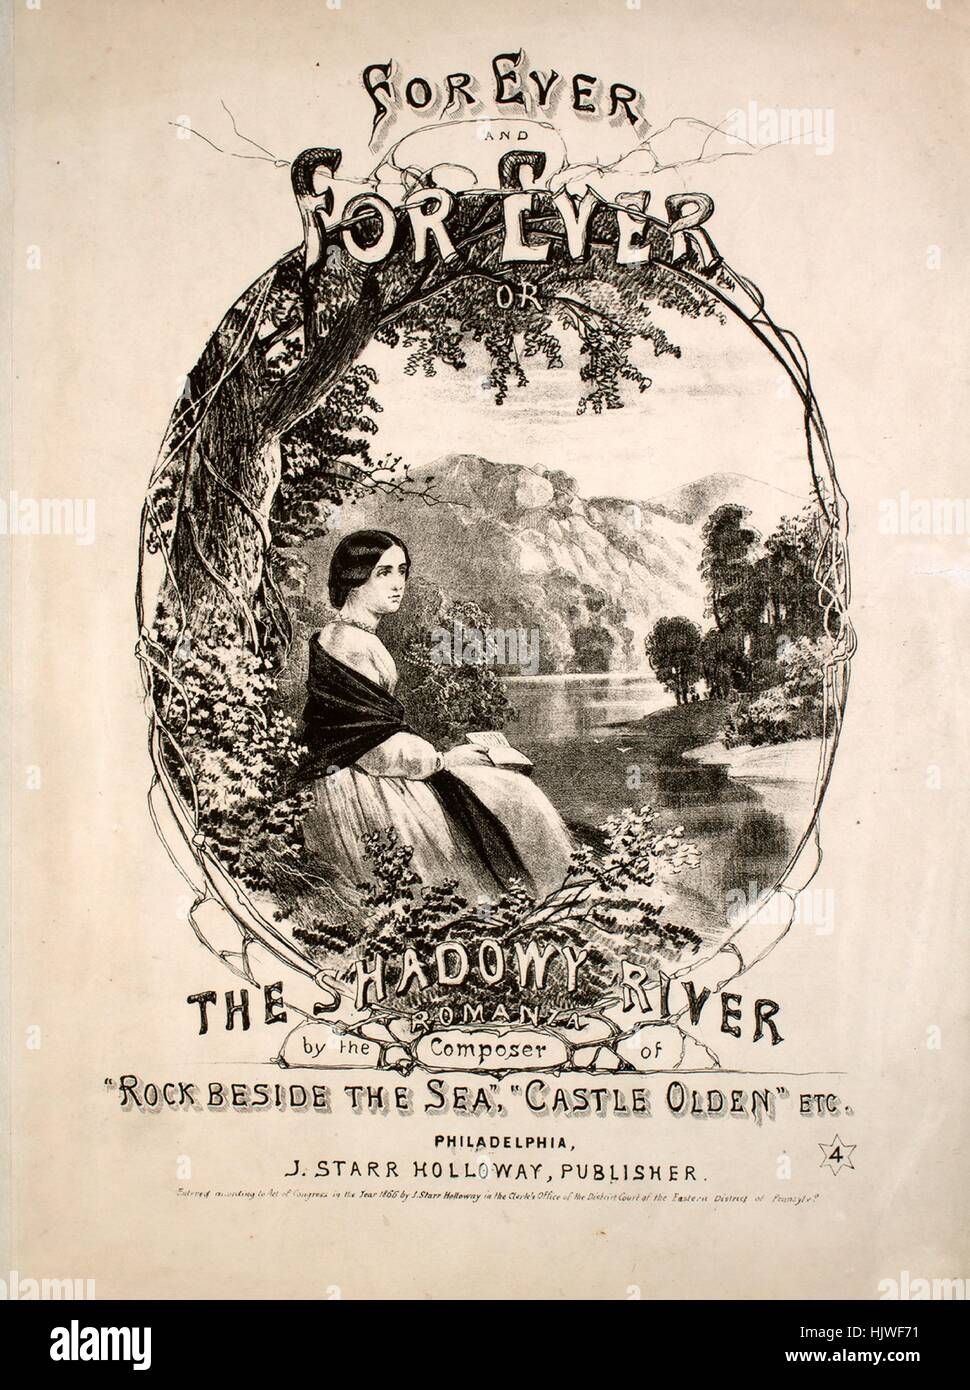 Sheet music cover image of the song 'Forever and Forever, or, The Shadowy River Romanza', with original - Stock Image